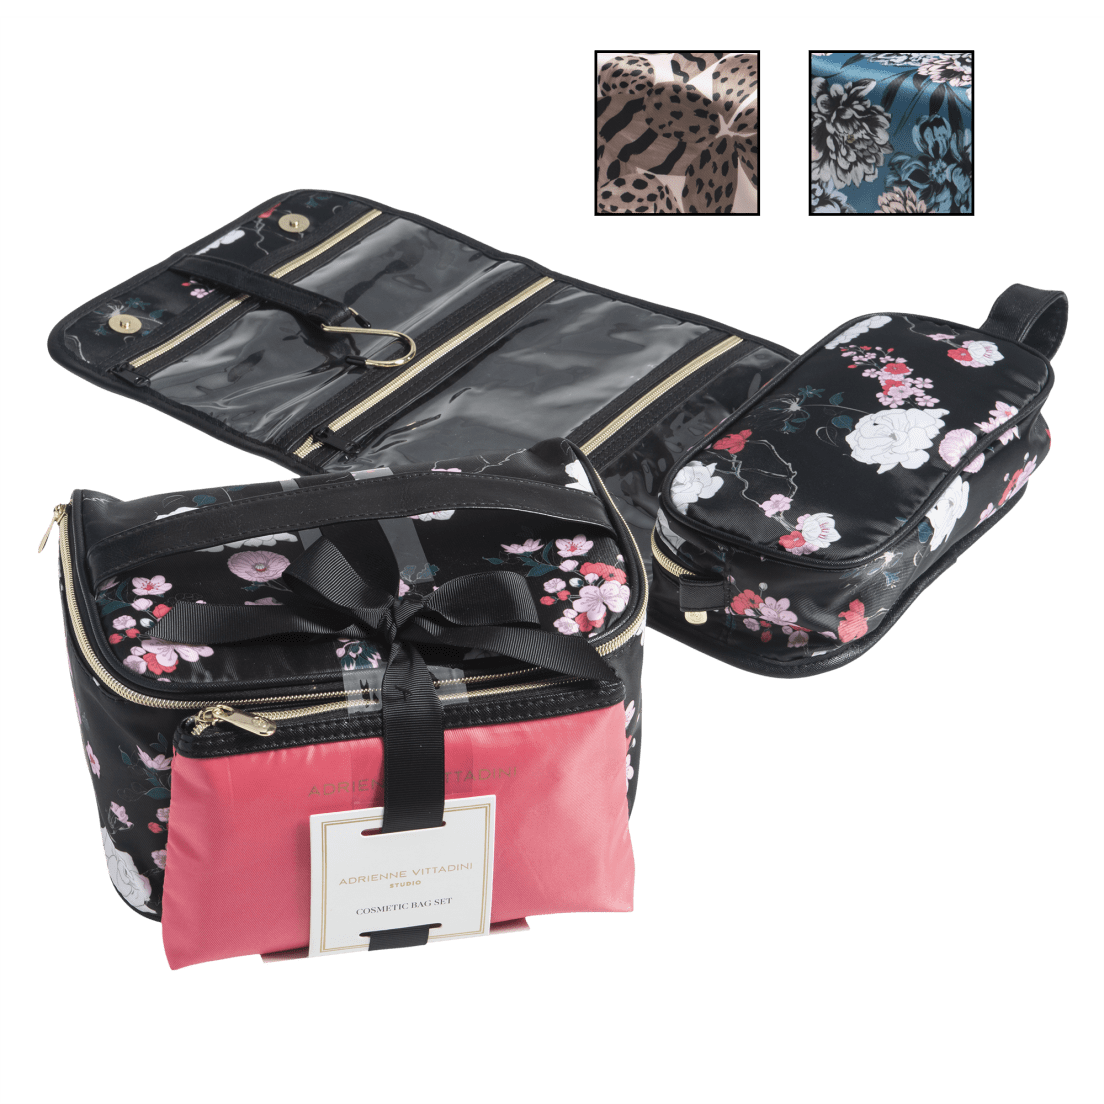 83362bad10a5 Adrienne Vittadini 3-Piece Cosmetic Travel Bag Set